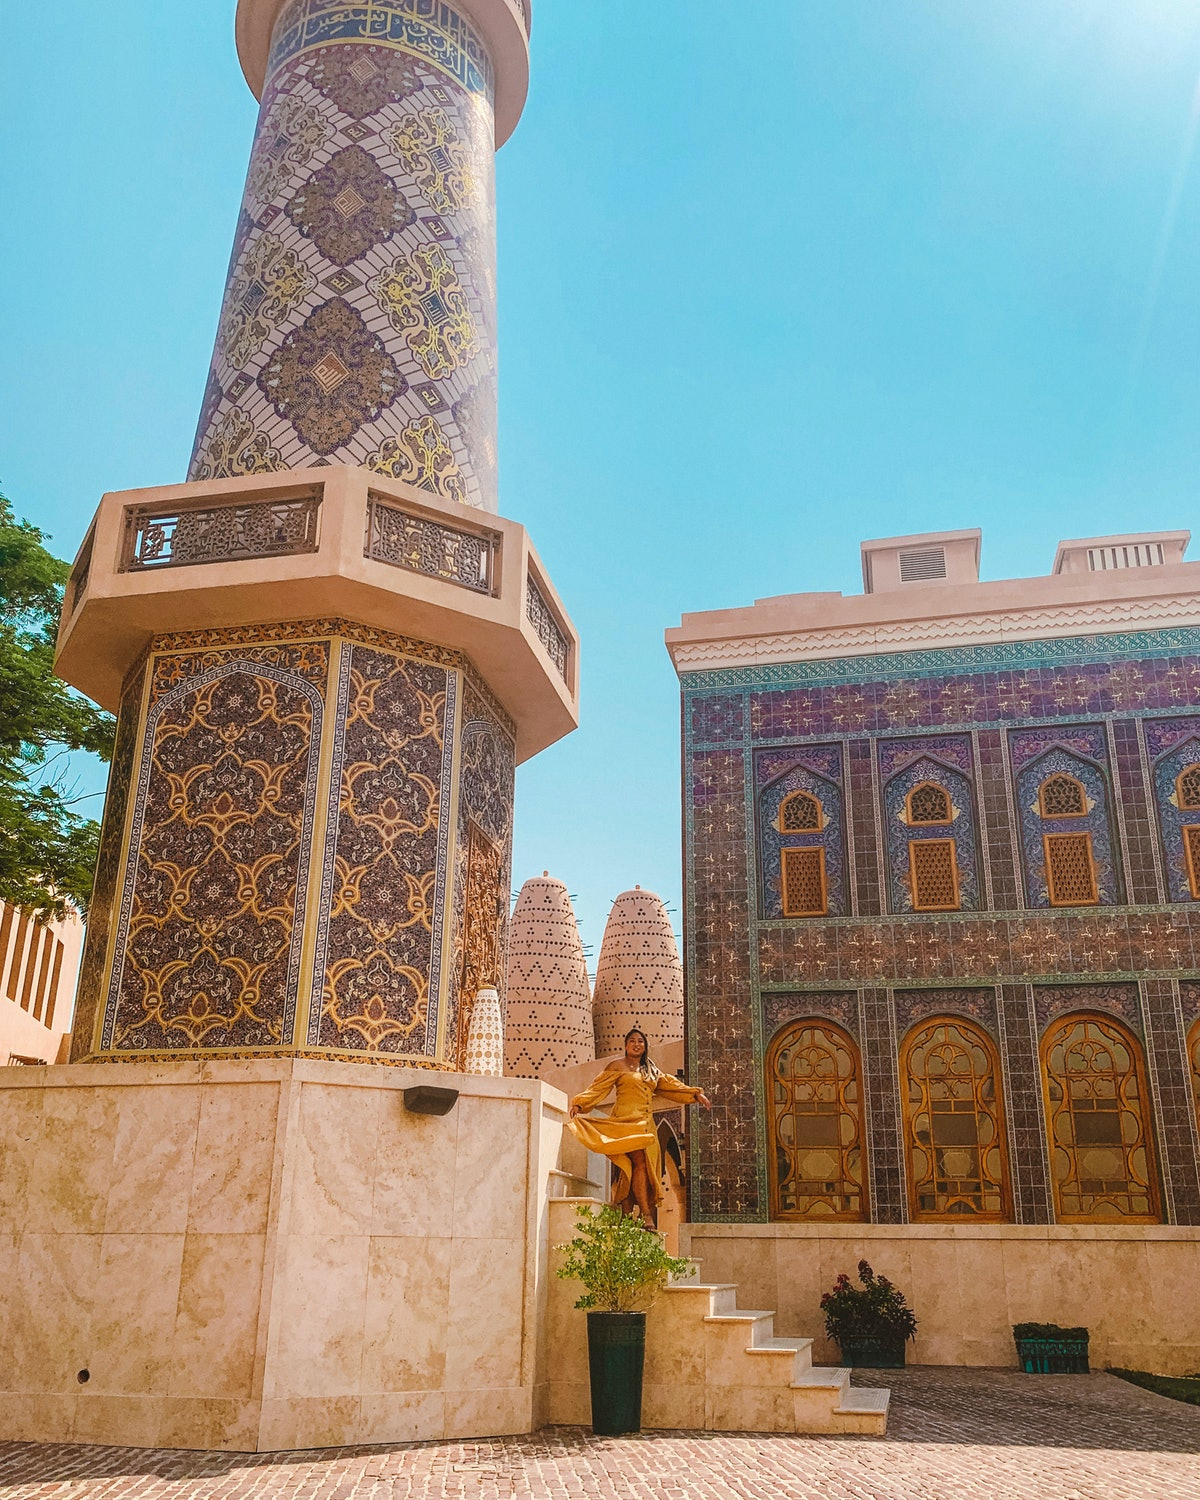 A woman in a brown dress walks down the steps of a purple, blue, and green mosque.